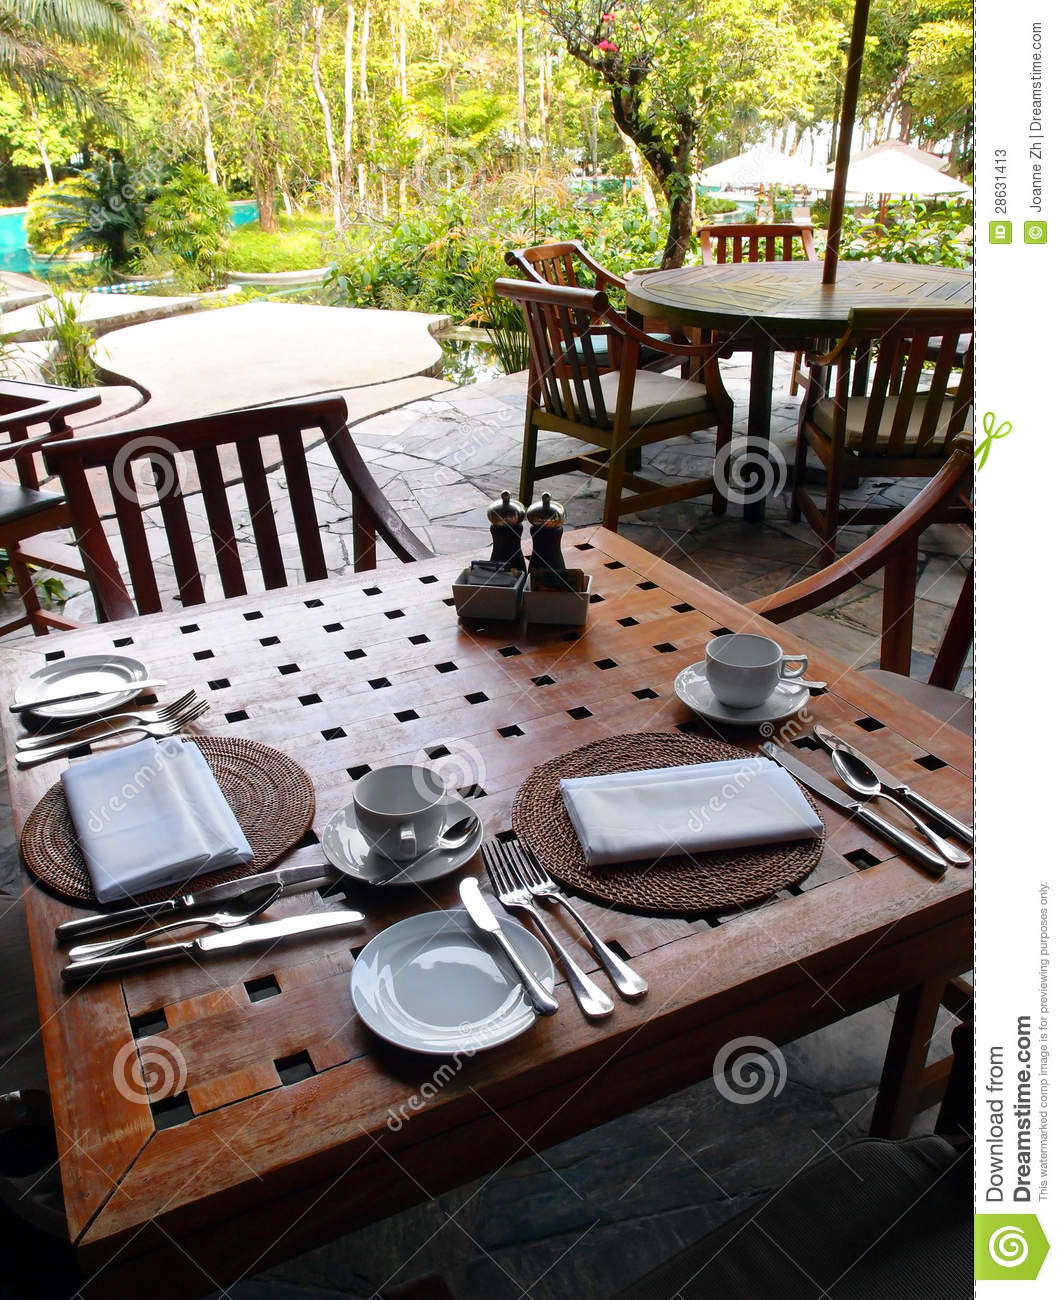 Outdoor Dining Restaurant Table Cutlery Settings Stock  : outdoor dining restaurant table cutlery settings 28631413 from www.dreamstime.com size 1063 x 1300 jpeg 283kB